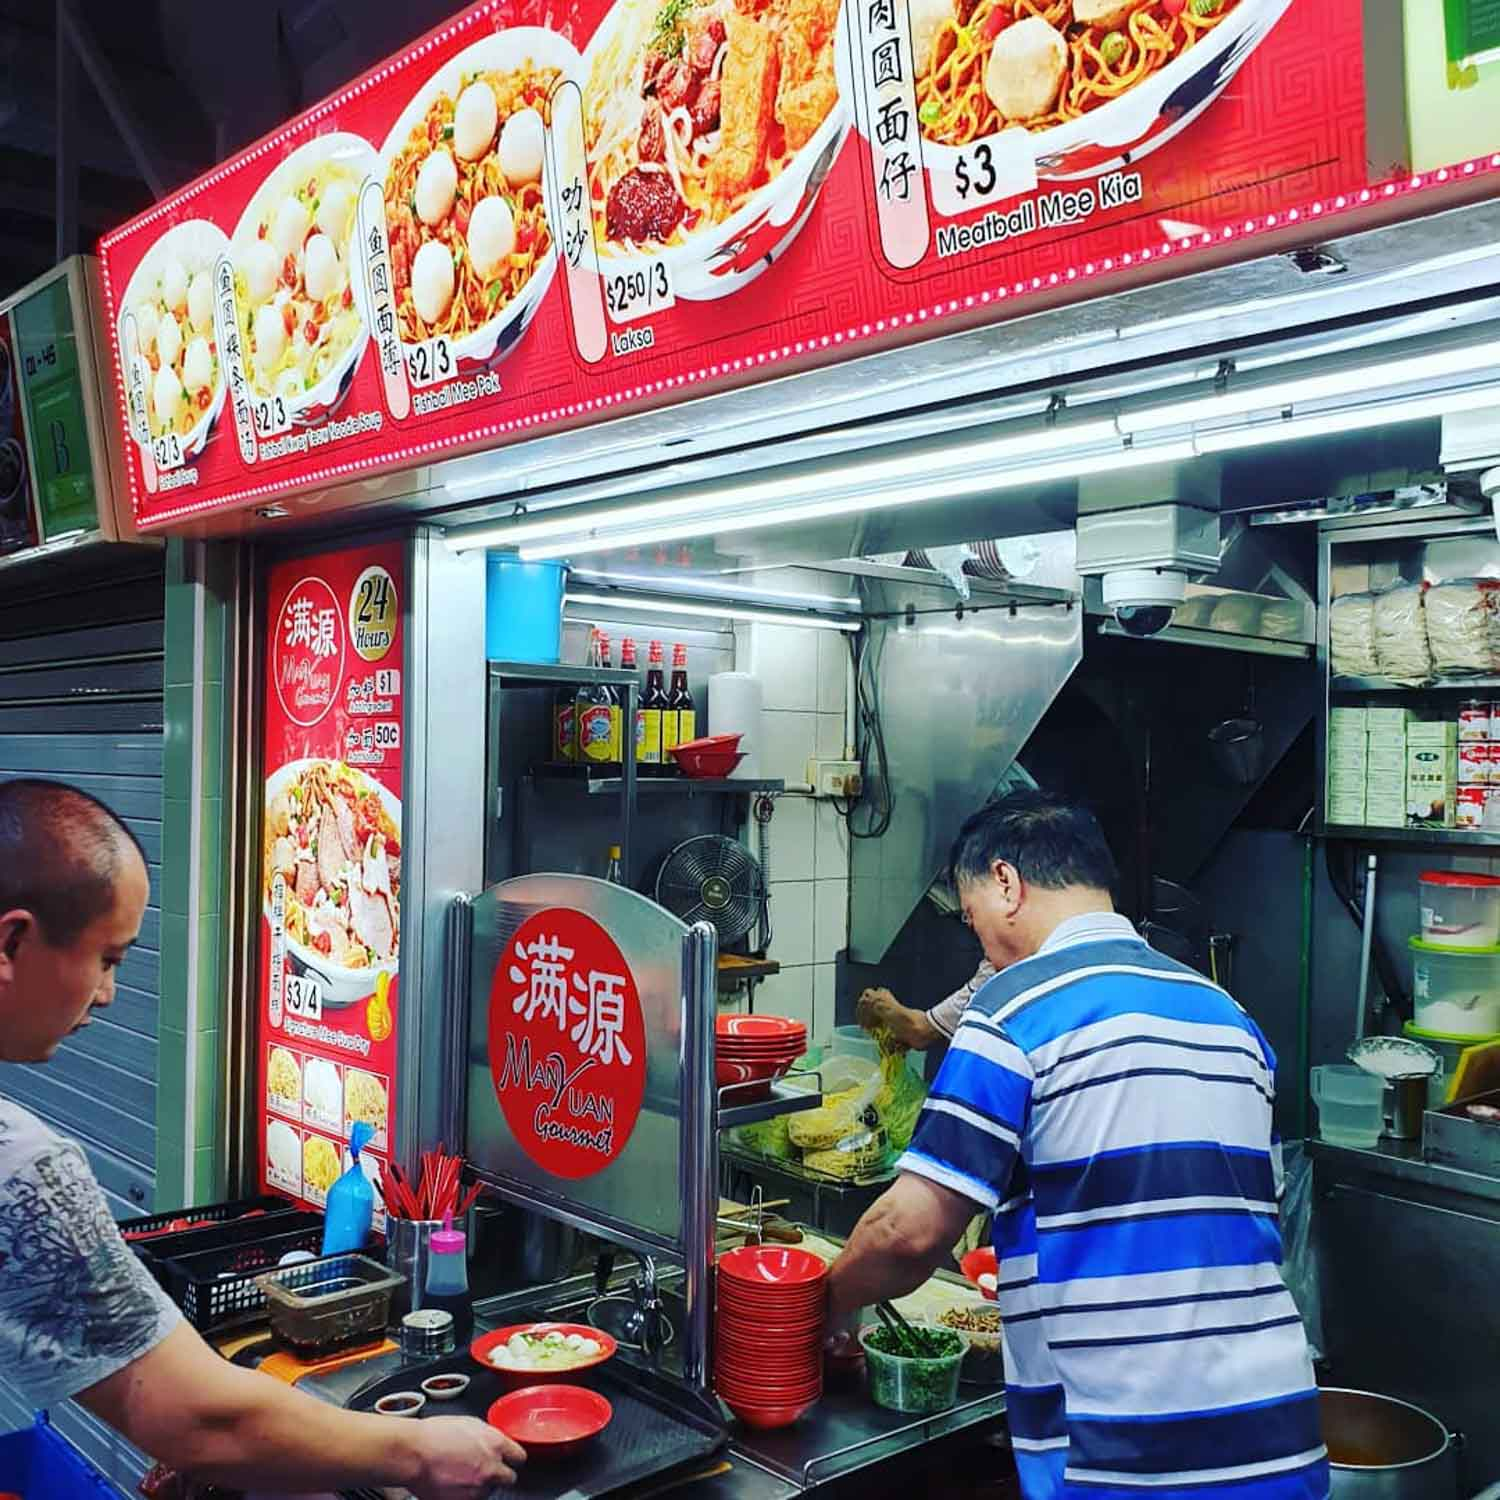 Dishes Under $2 - Fishball Noodles